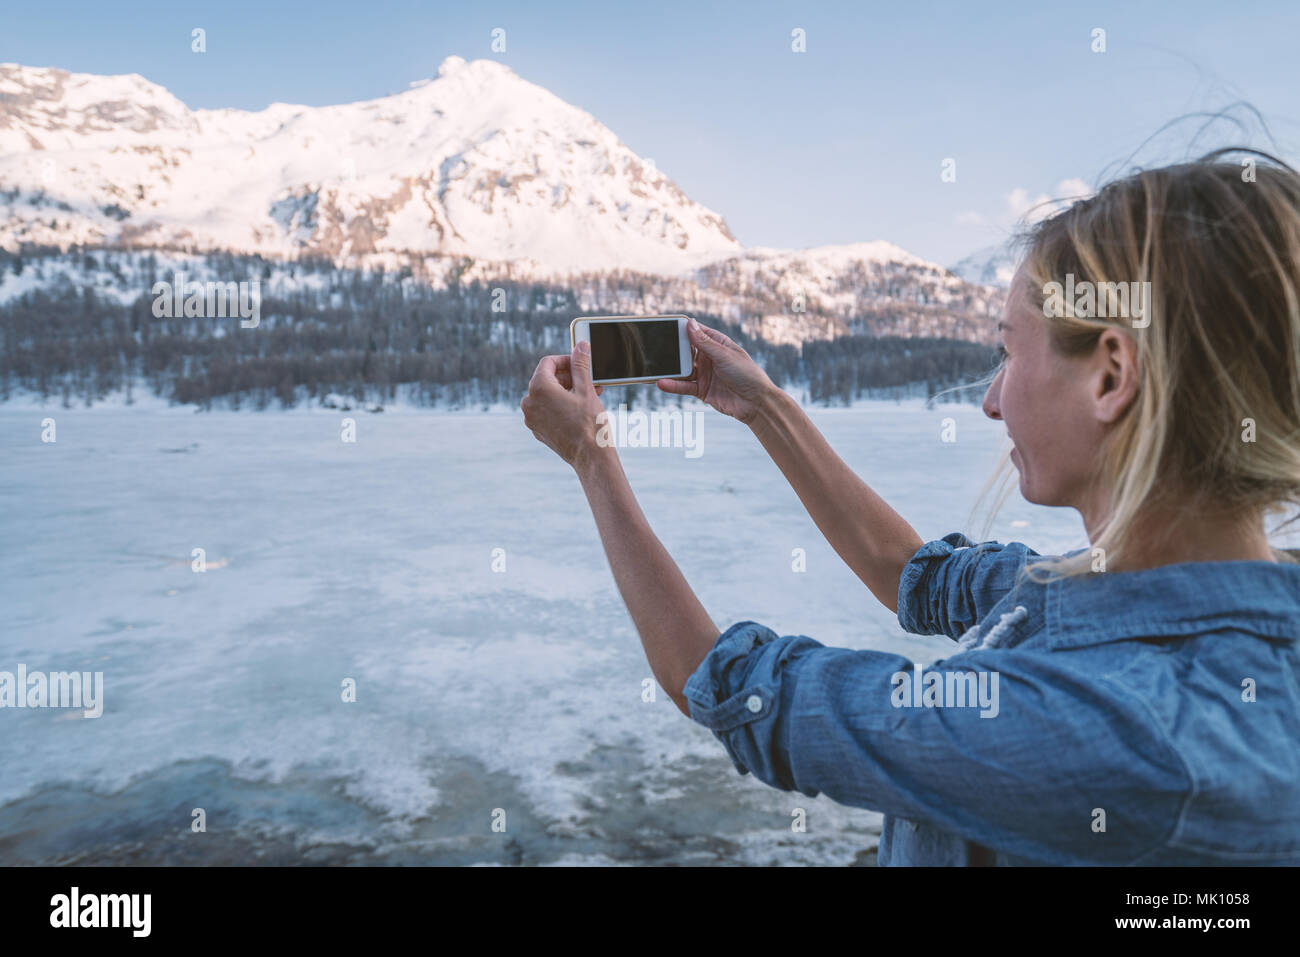 Young woman taking a mobile phone picture of stunning mountain landscape at sunset in Switzerland. People travel technology concept Stock Photo